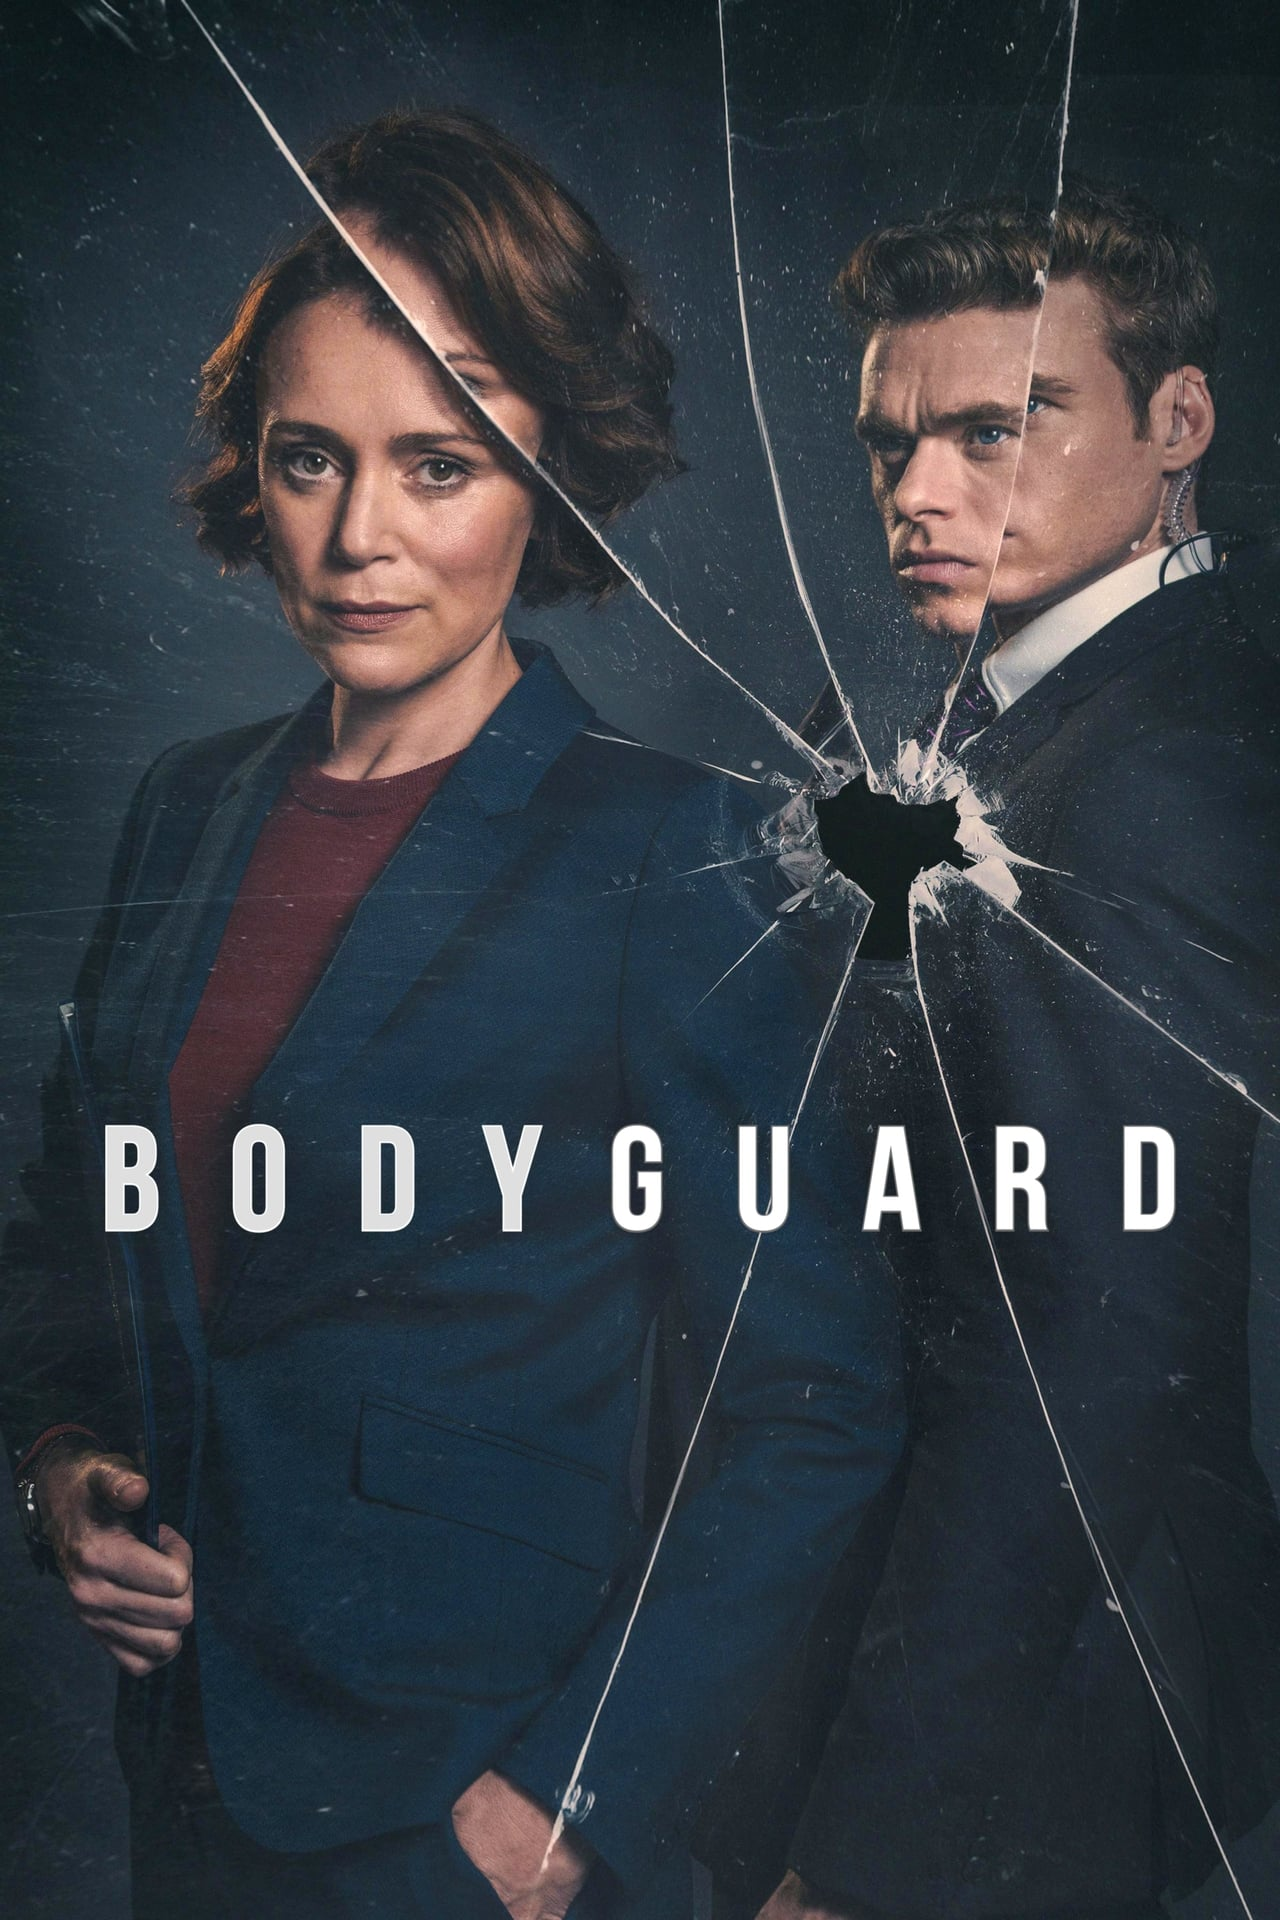 Bodyguard Season 1 (2018) putlockers cafe